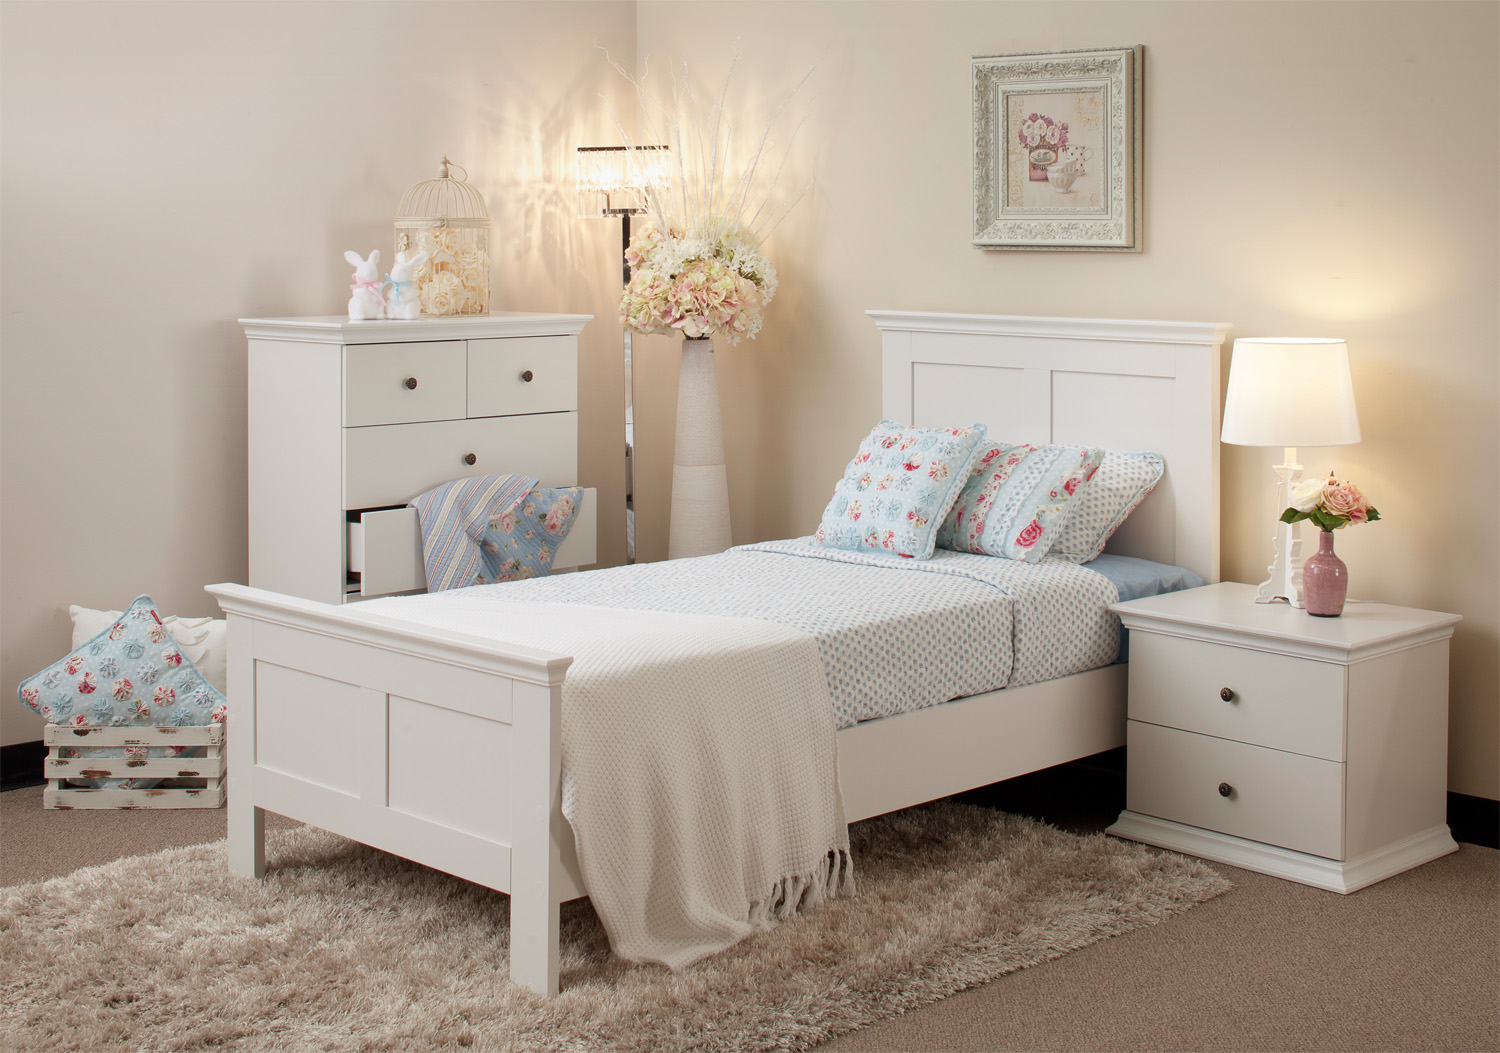 White Bedroom Design Ideas Collection for Your Home on Beautiful Bedroom Ideas For Small Rooms  id=84635